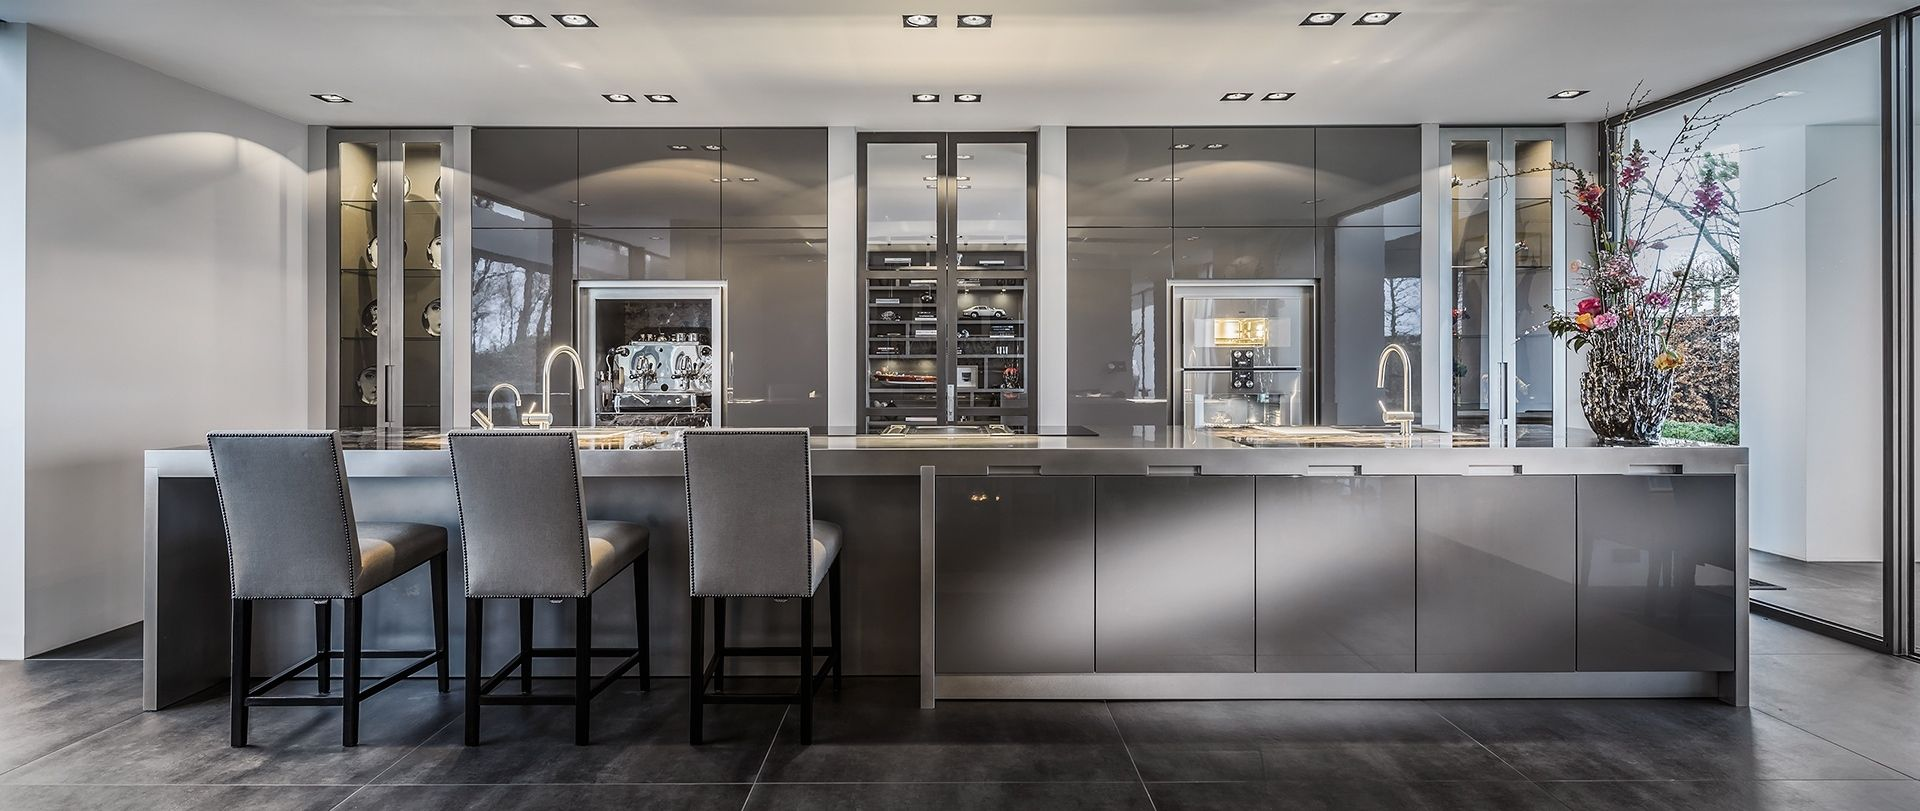 High End Kitchens High End Kitchens Designs And How To Design A -  high end kitchen